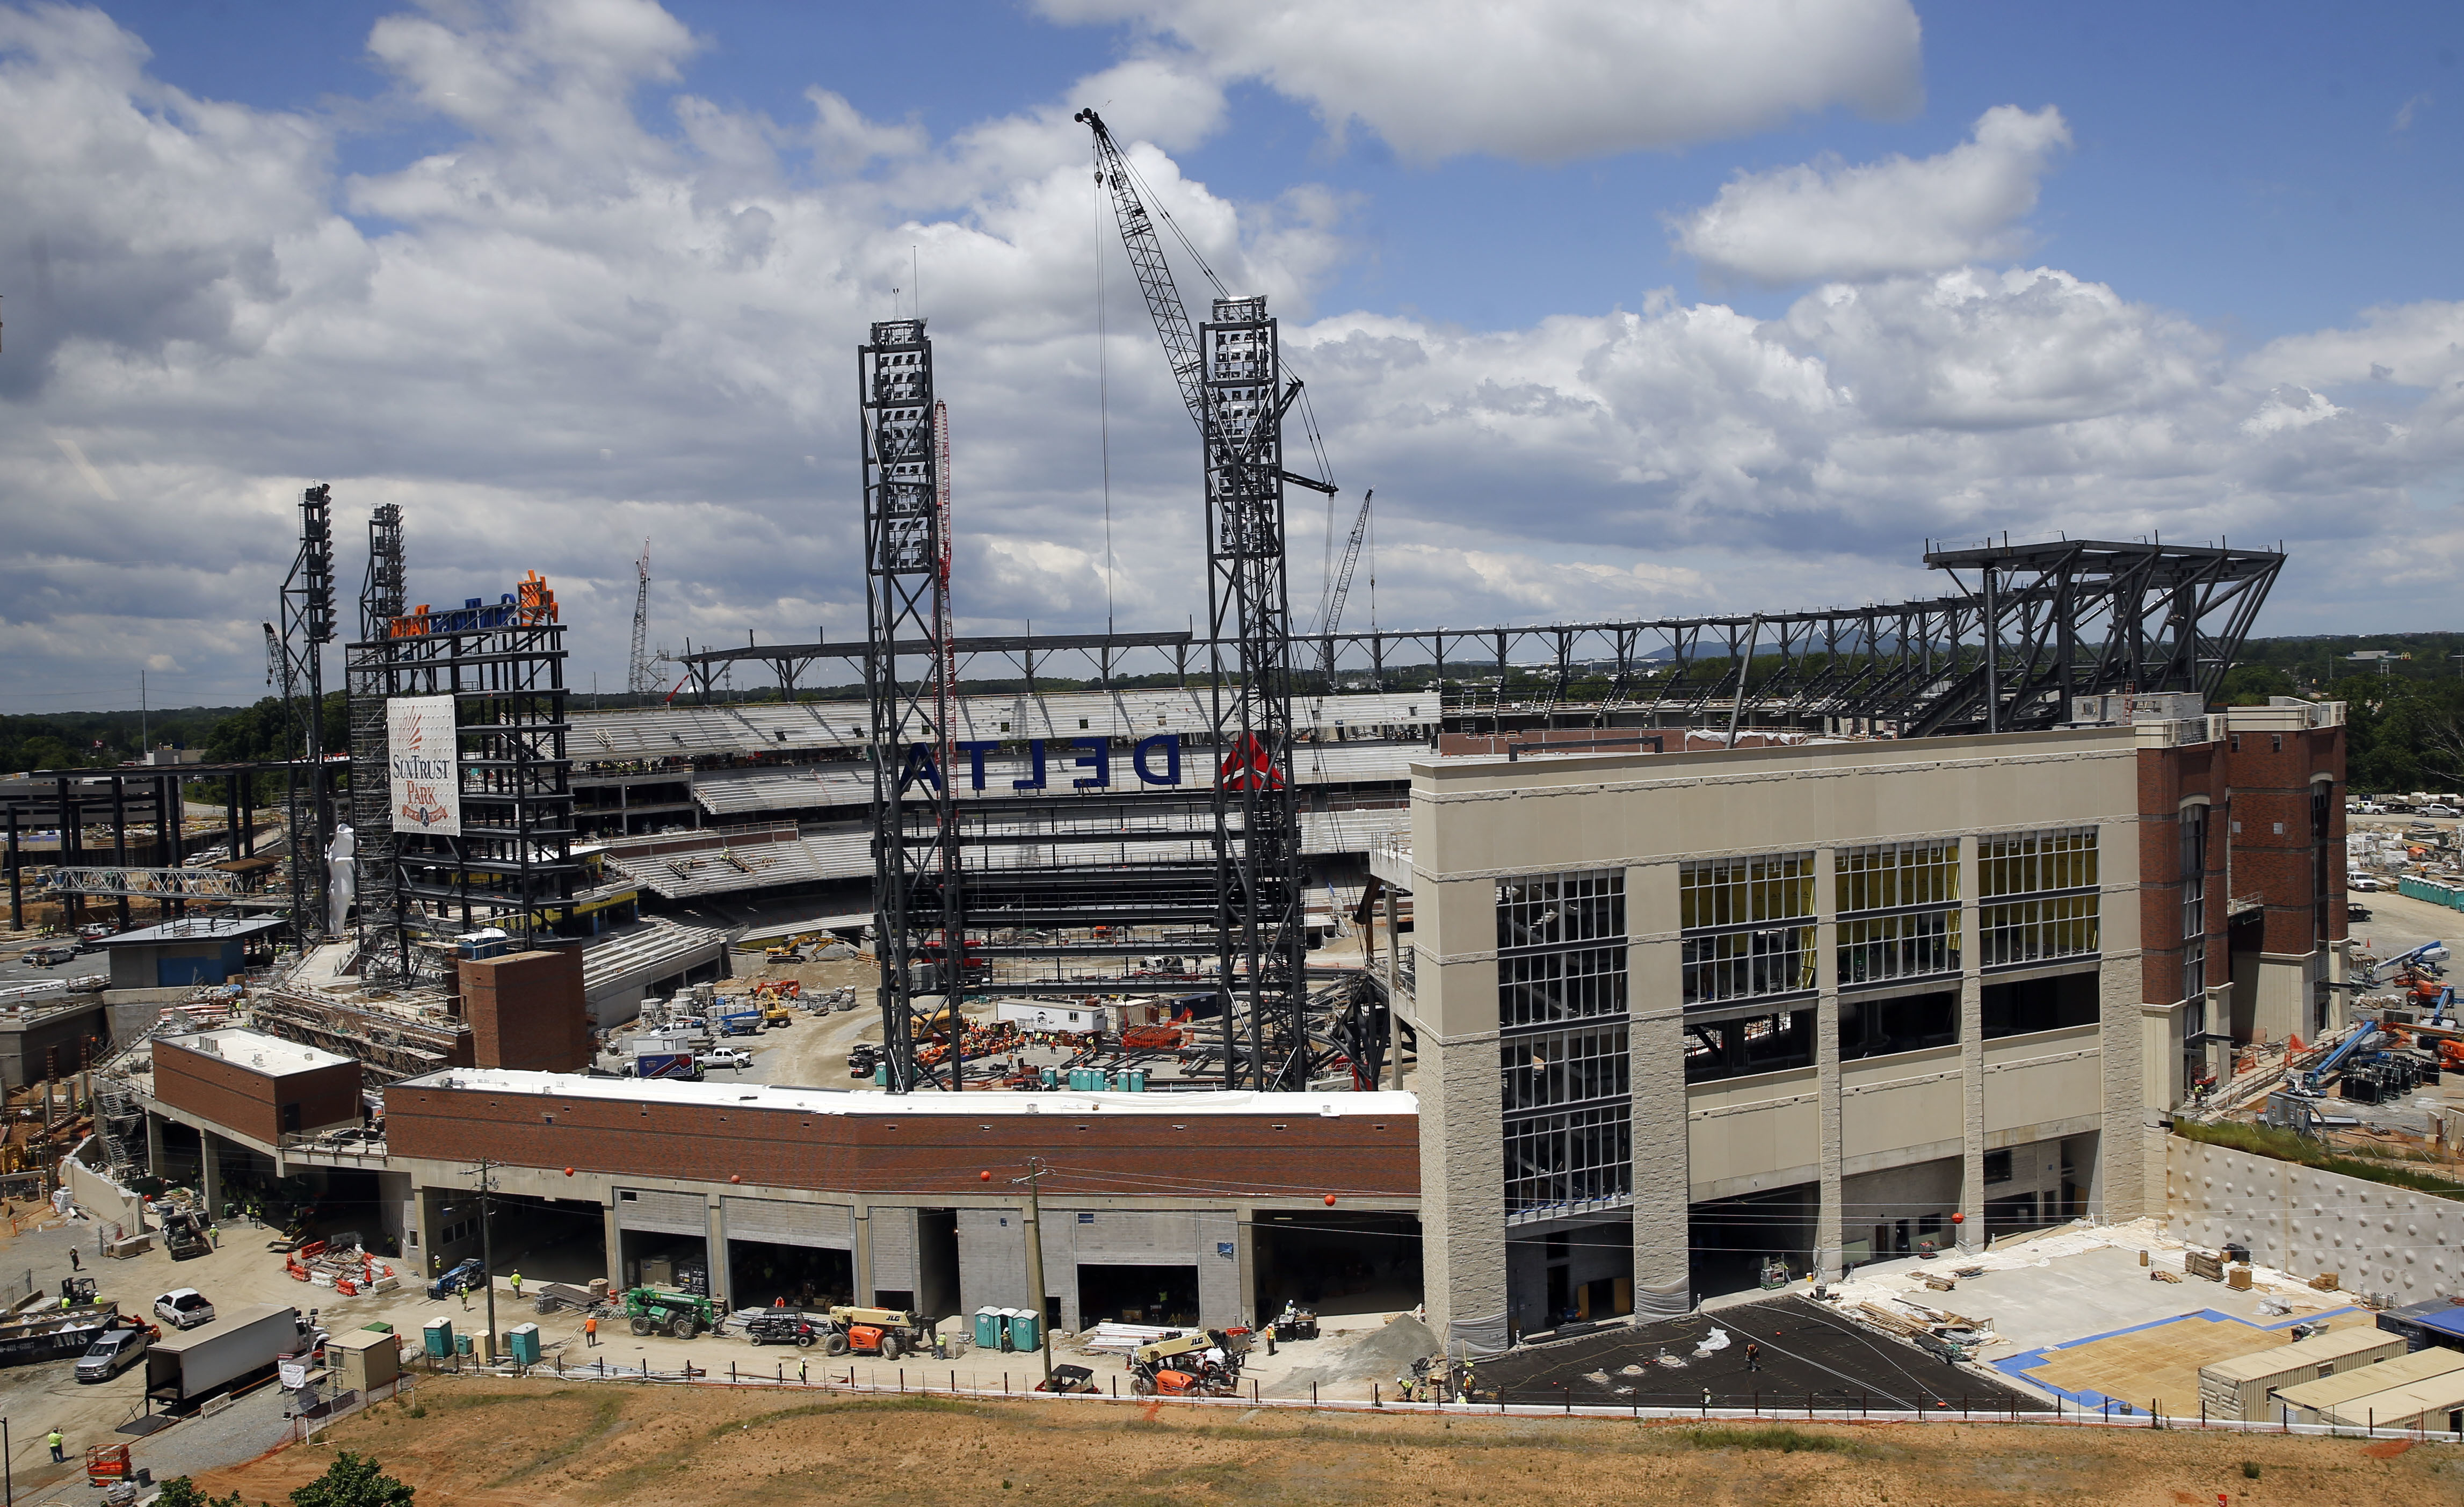 FILE- In this May 5, 2016, file photo, work continues on SunTrust Park, the future home of the Atlanta Braves baseball team in Atlanta. The Braves are scheduled to open SunTrust Park in April 2017, according to a copy of the team's preliminary schedule ob